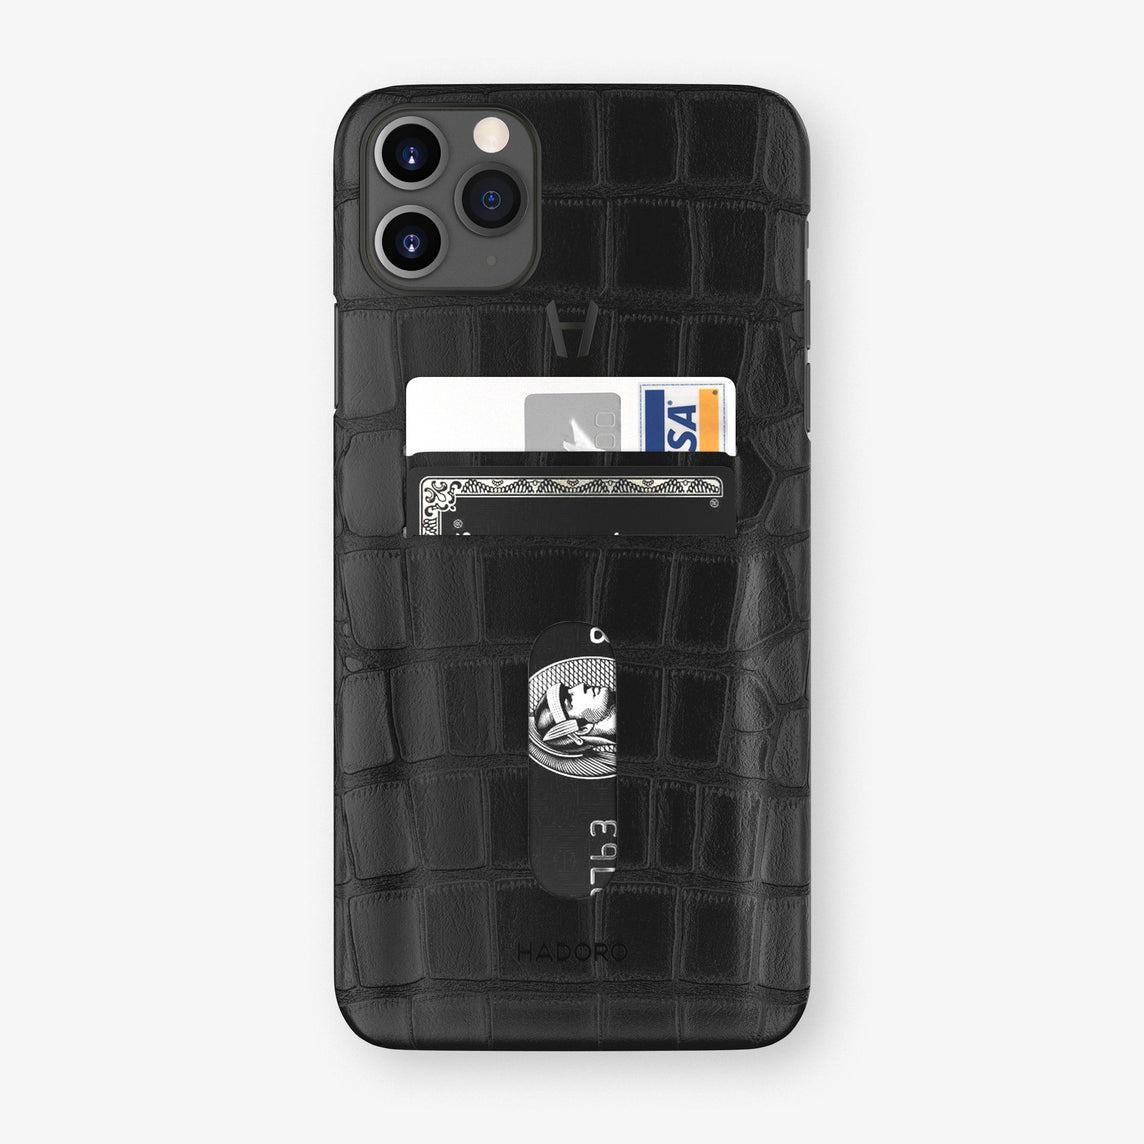 Alligator Card Holder Case iPhone 11 Pro Max | Black - Black